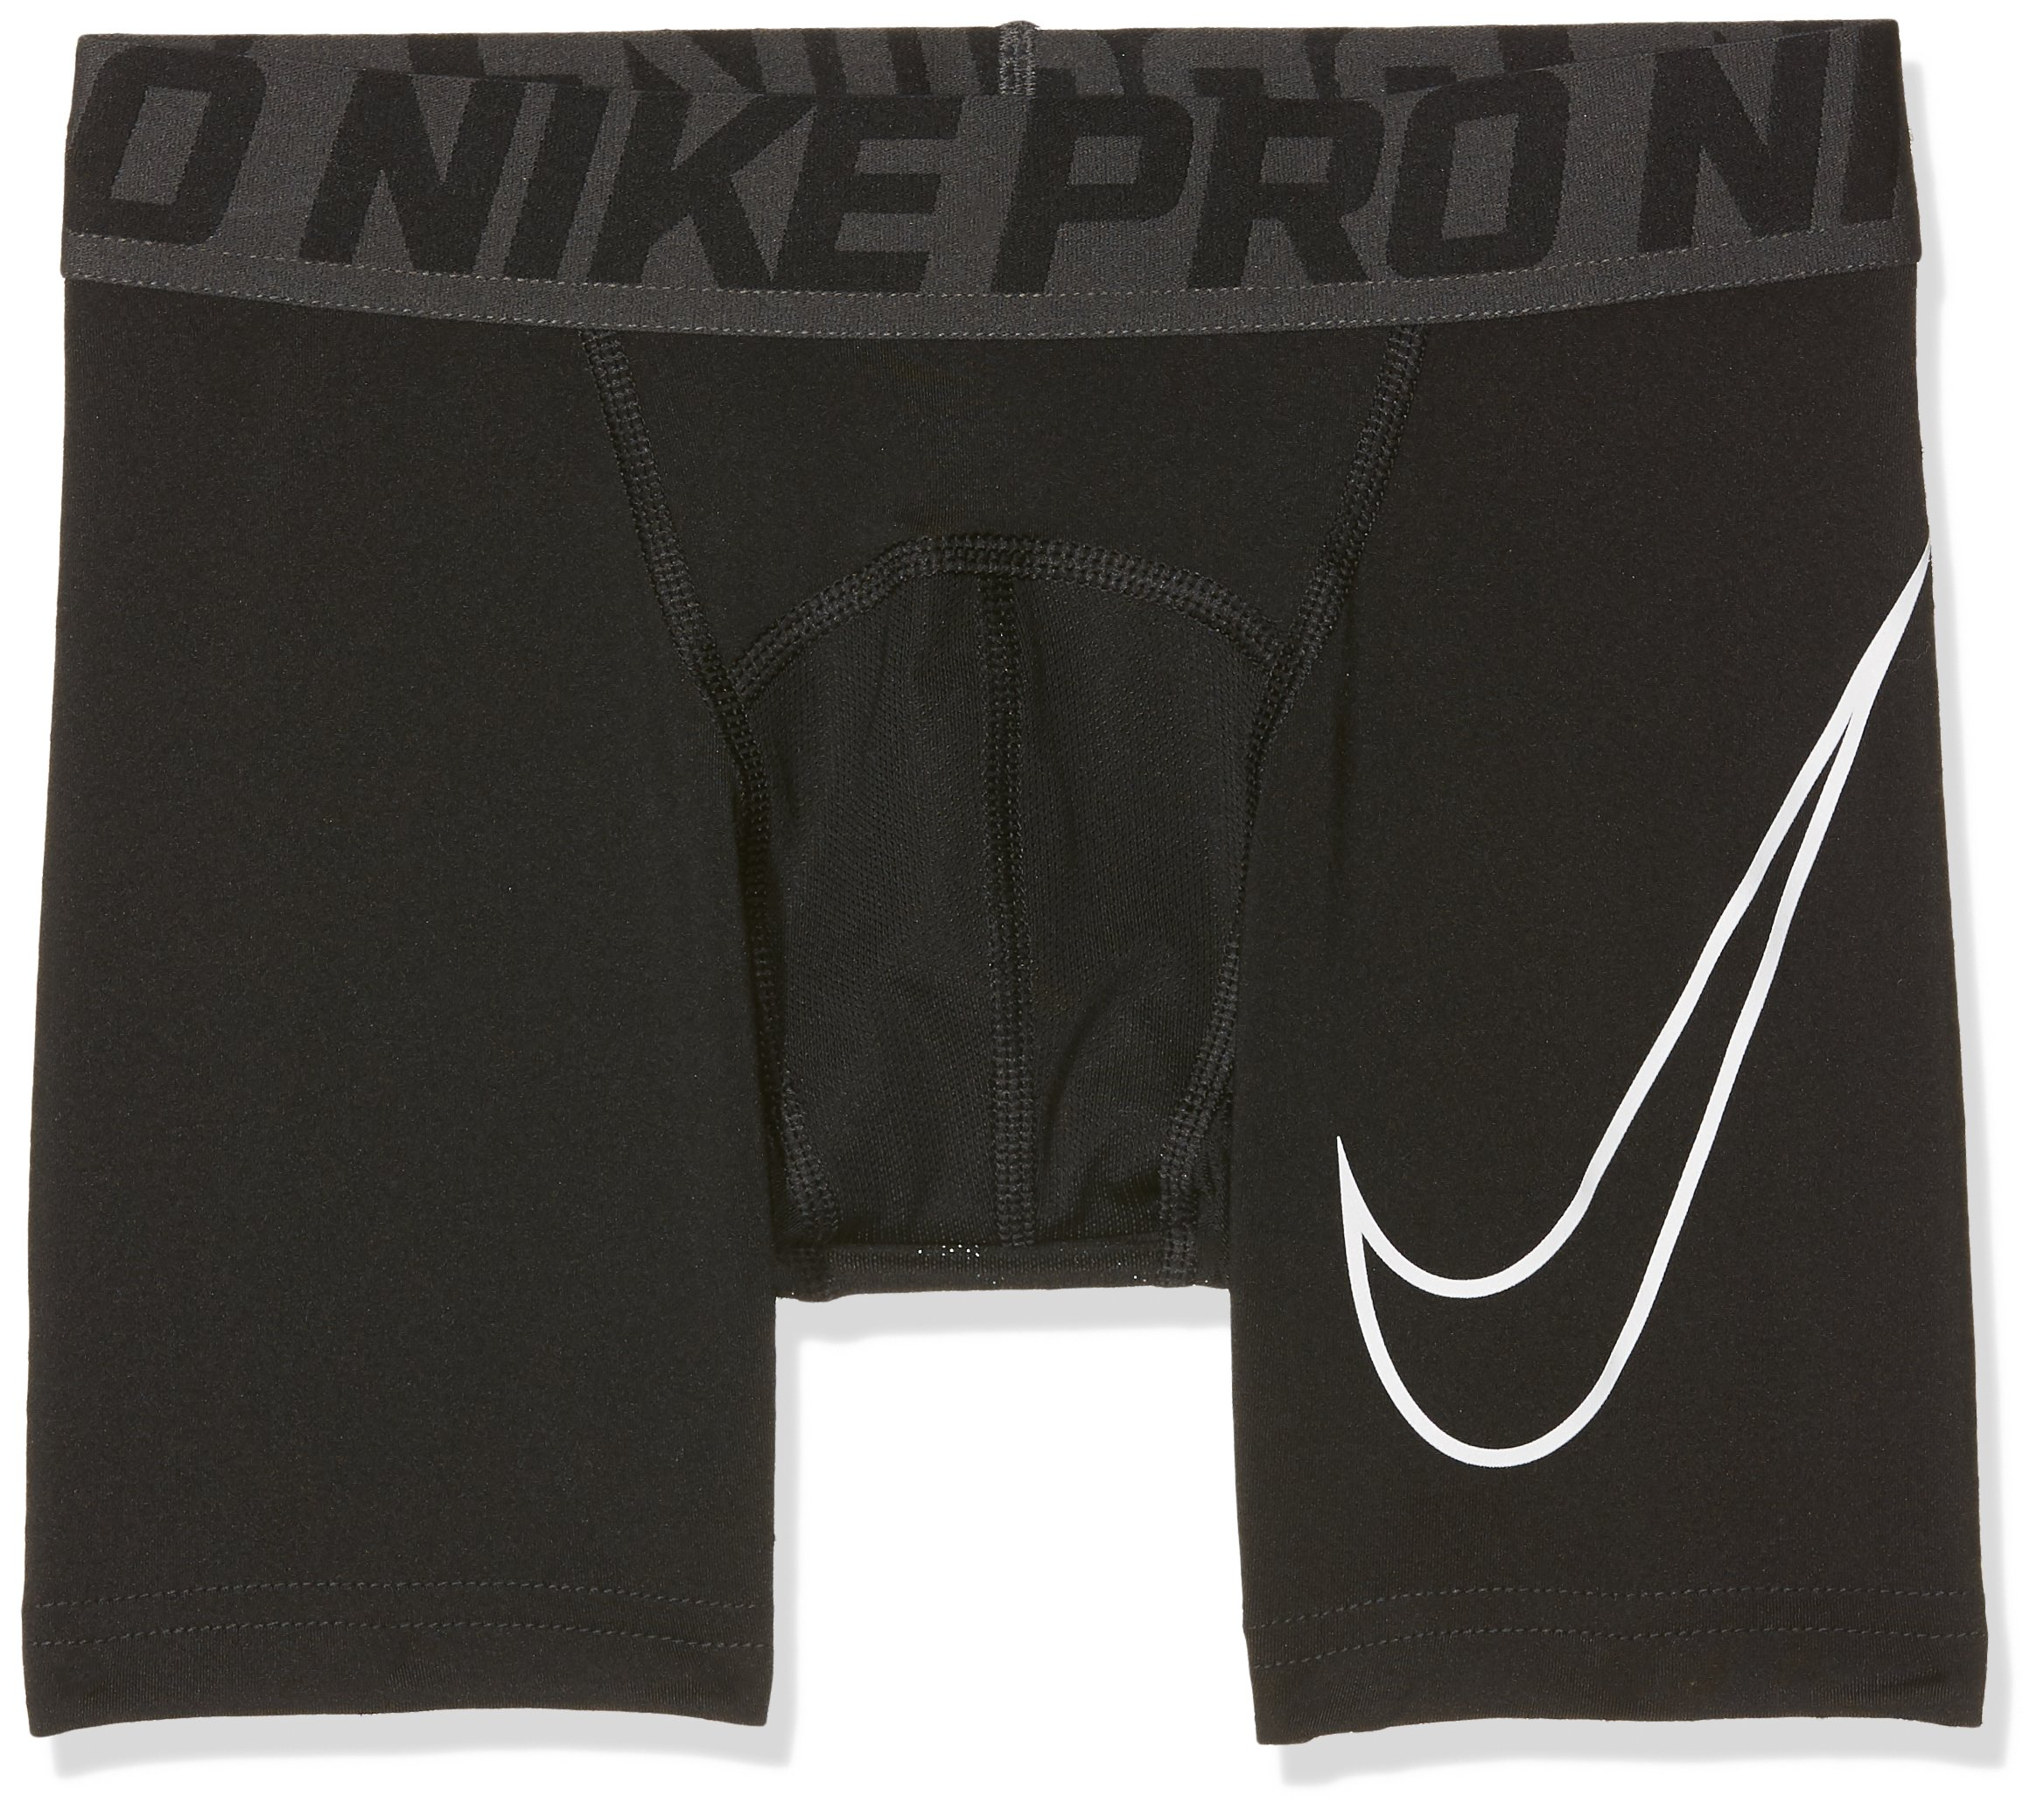 Nike Pro Big Kids' (Boys') Training Shorts,Black/White,Small (7-8 Big Kids) by Nike